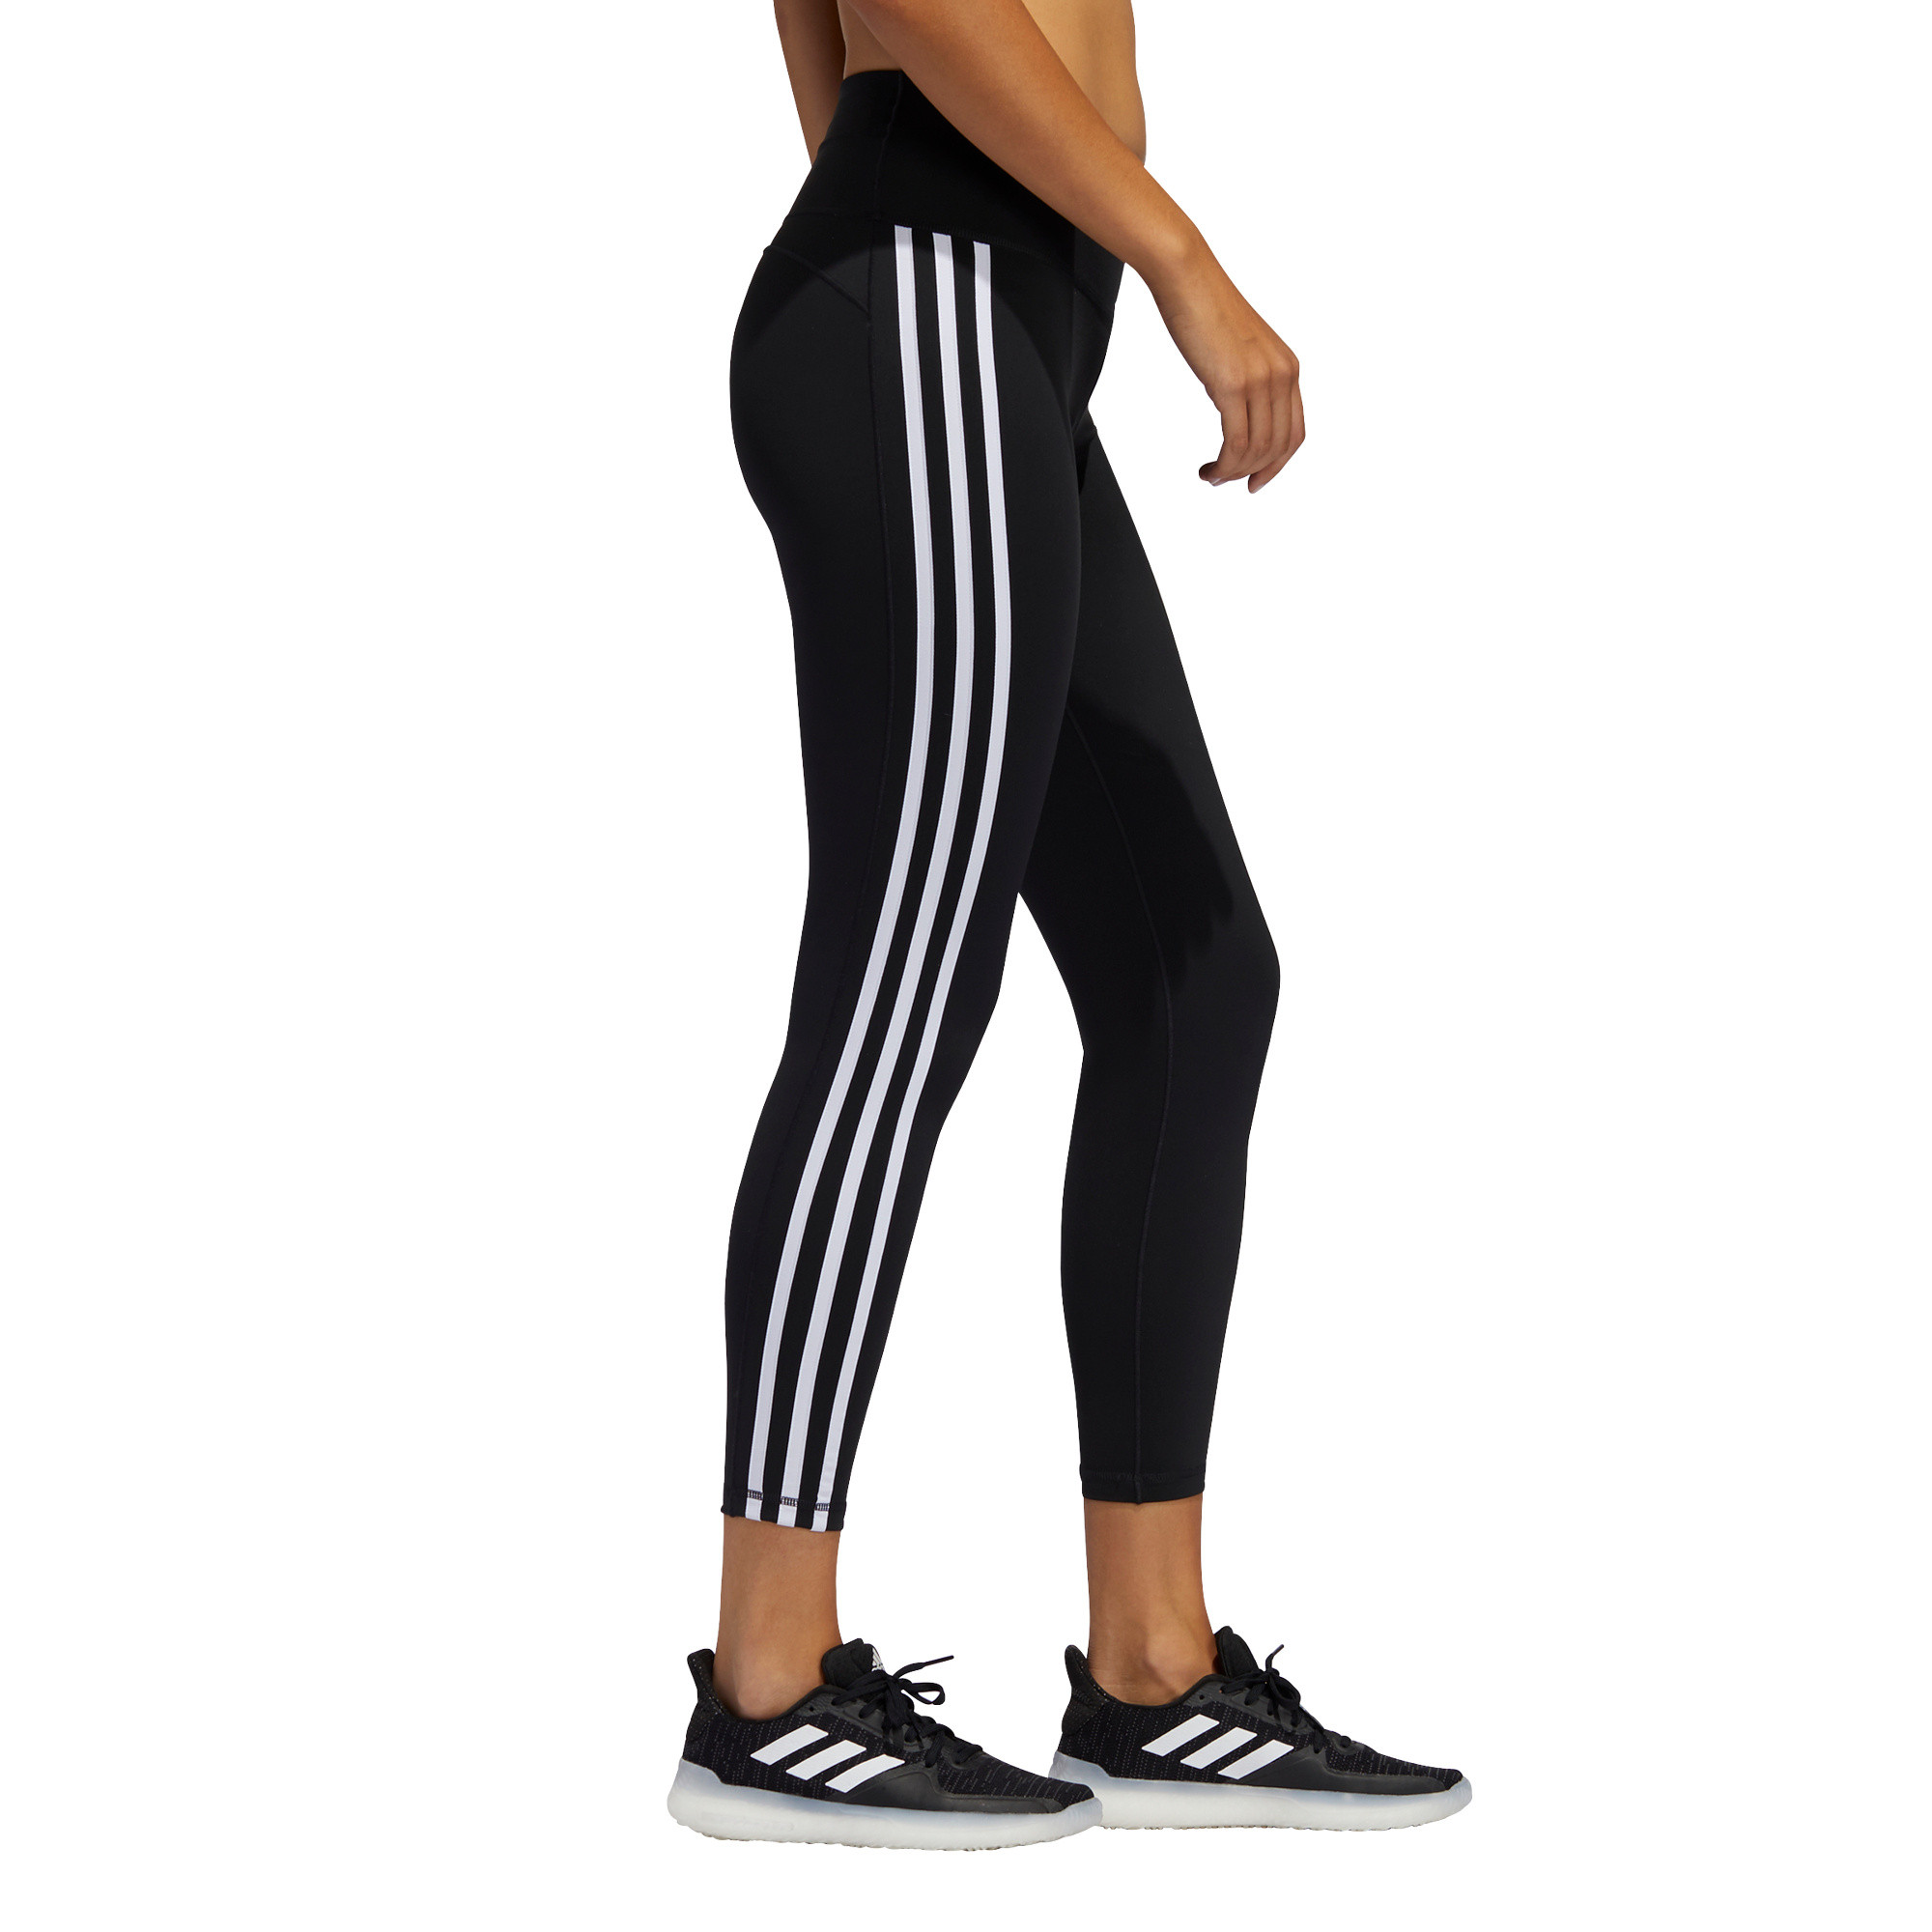 Tight 7/8 Believe This 2.0 3-Stripes, Nero, large image number 5